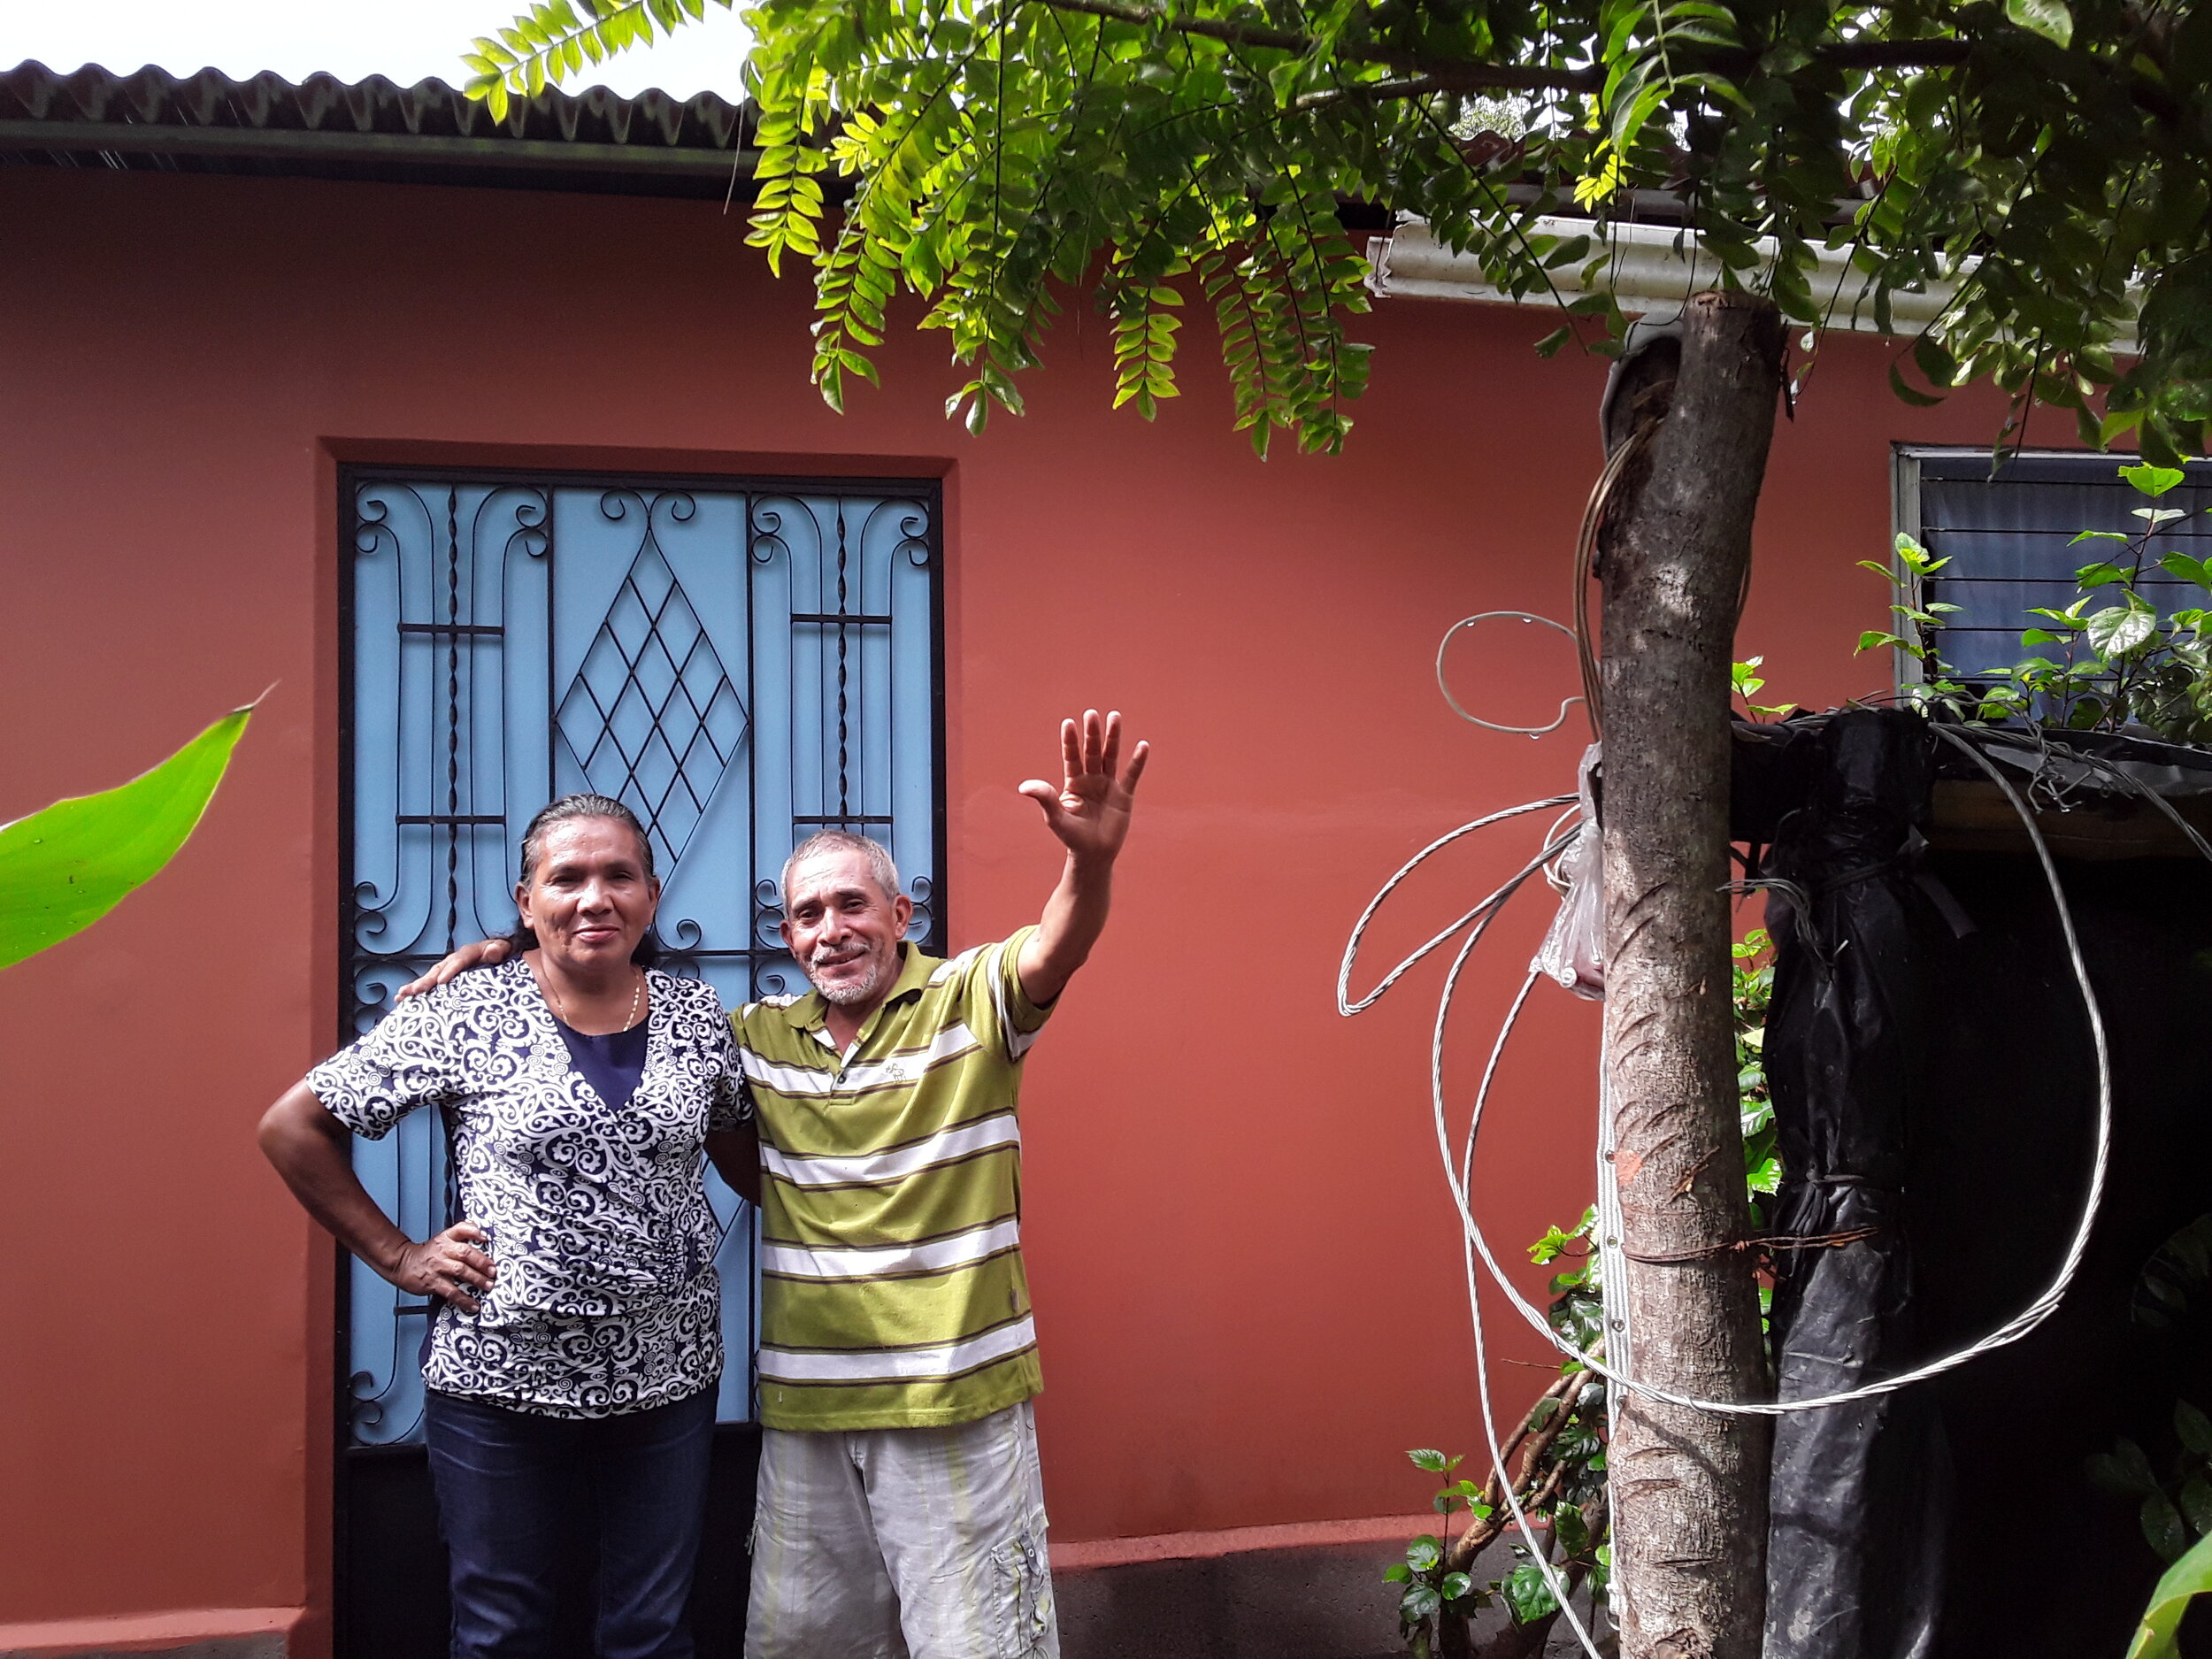 Greetings from El Salvador! This is Jose & Rosa Guzman, standing in front of their new home!